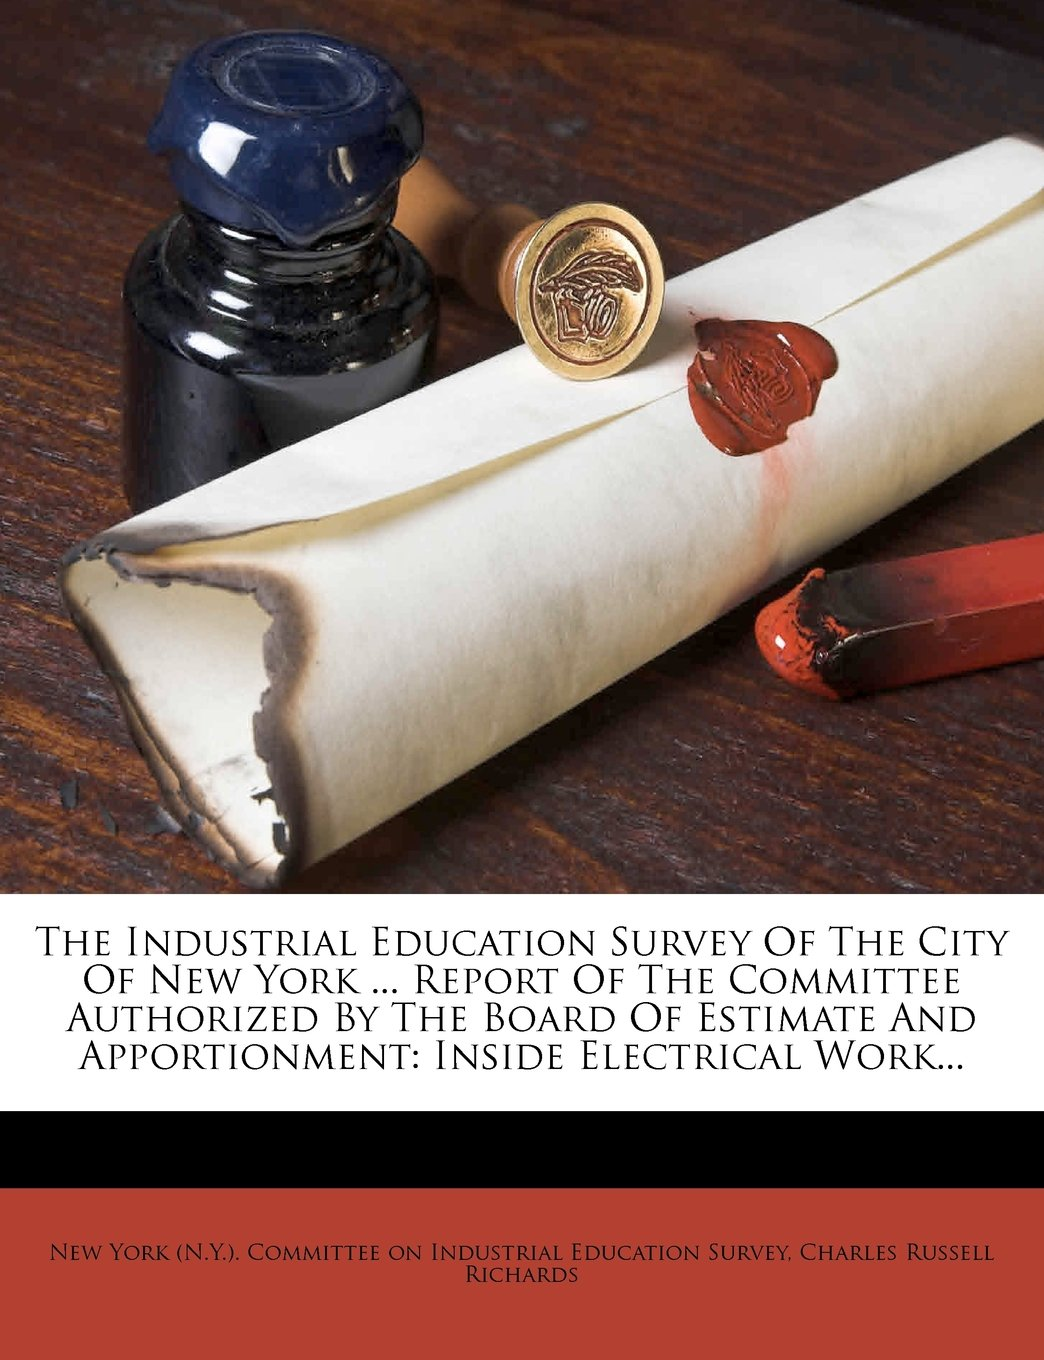 The Industrial Education Survey Of The City Of New York ... Report Of The Committee Authorized By The Board Of Estimate And Apportionment: Inside Electrical Work... ebook